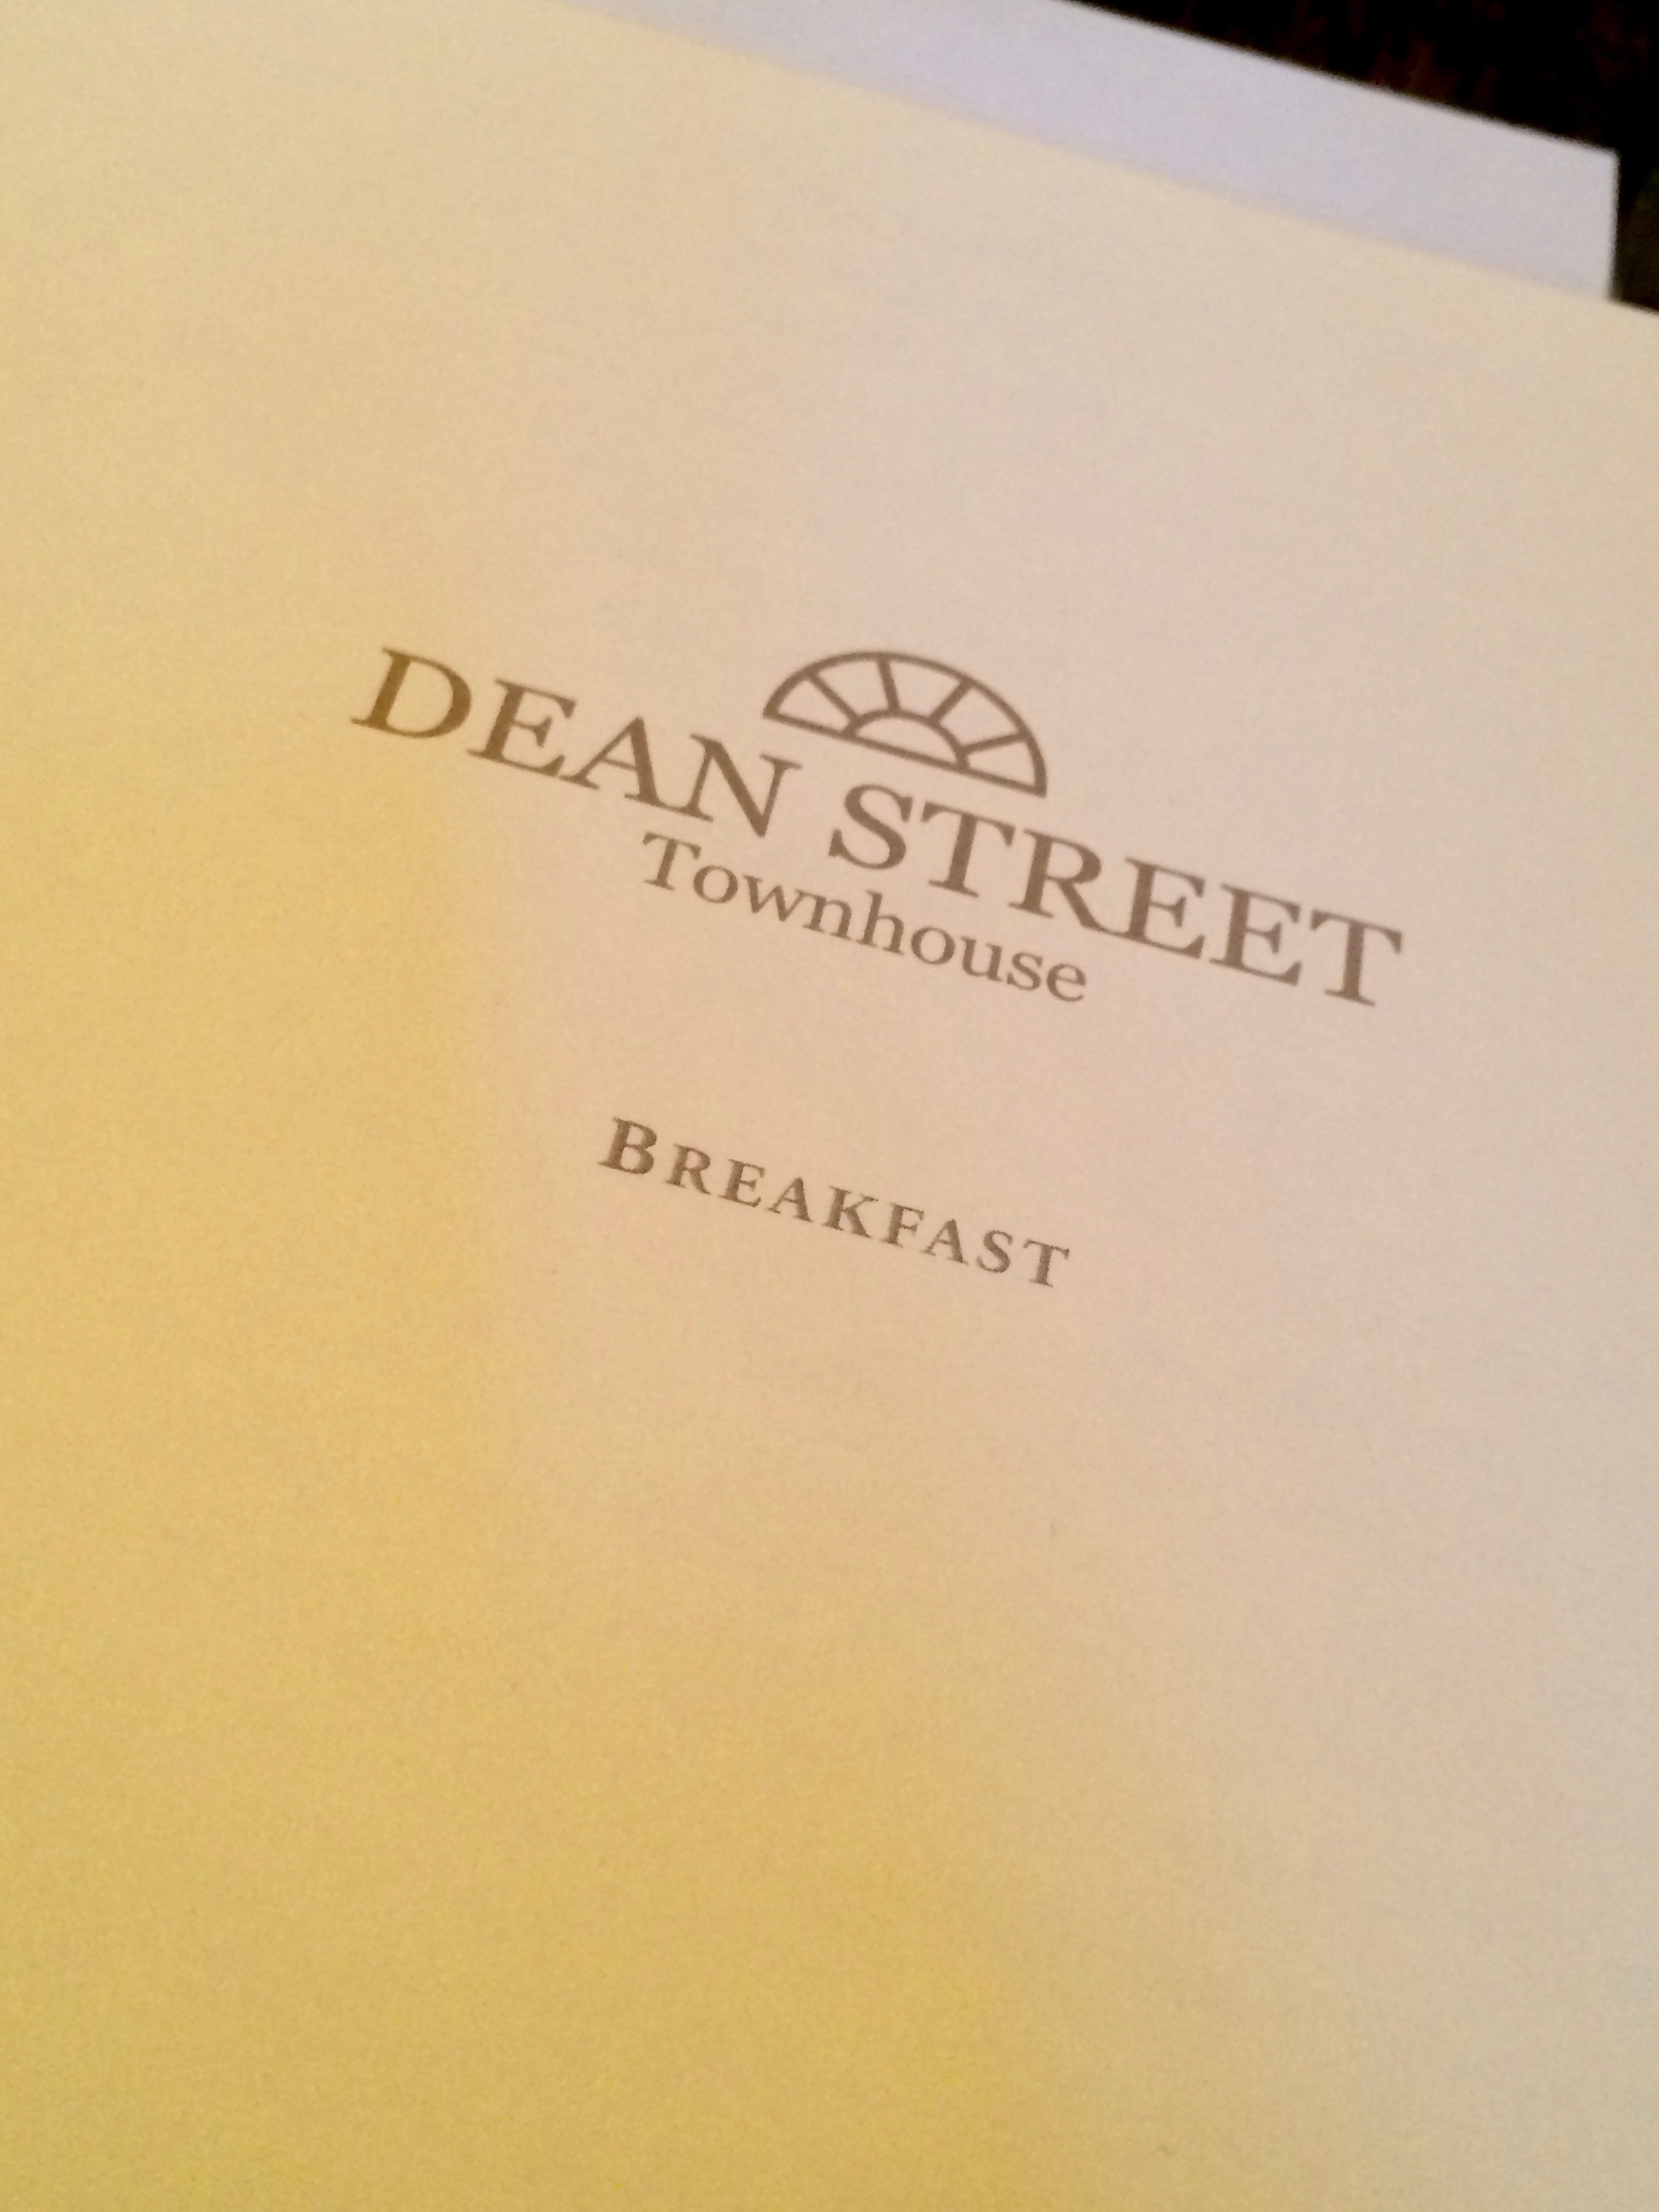 British Tradition Meets Contemporary Chic at Dean Street